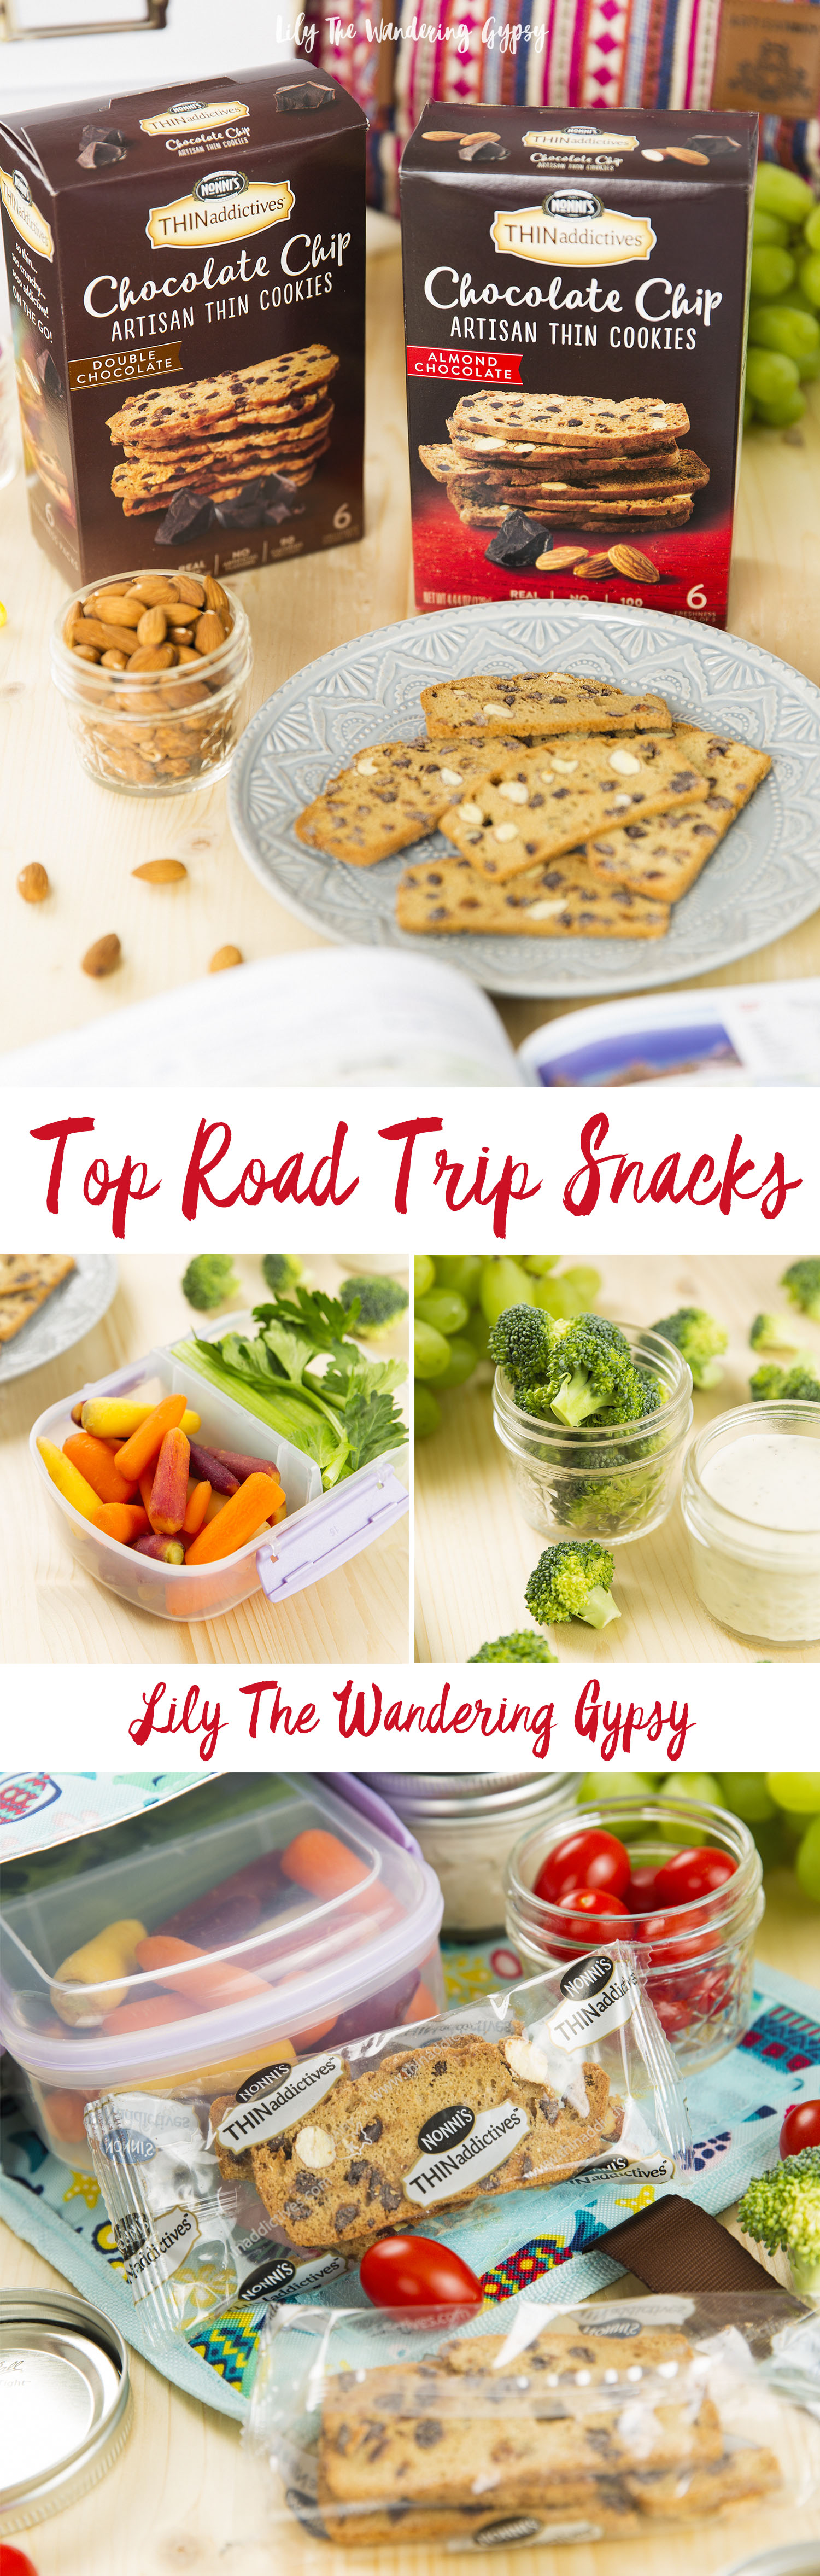 Top Road Trip Snacks!